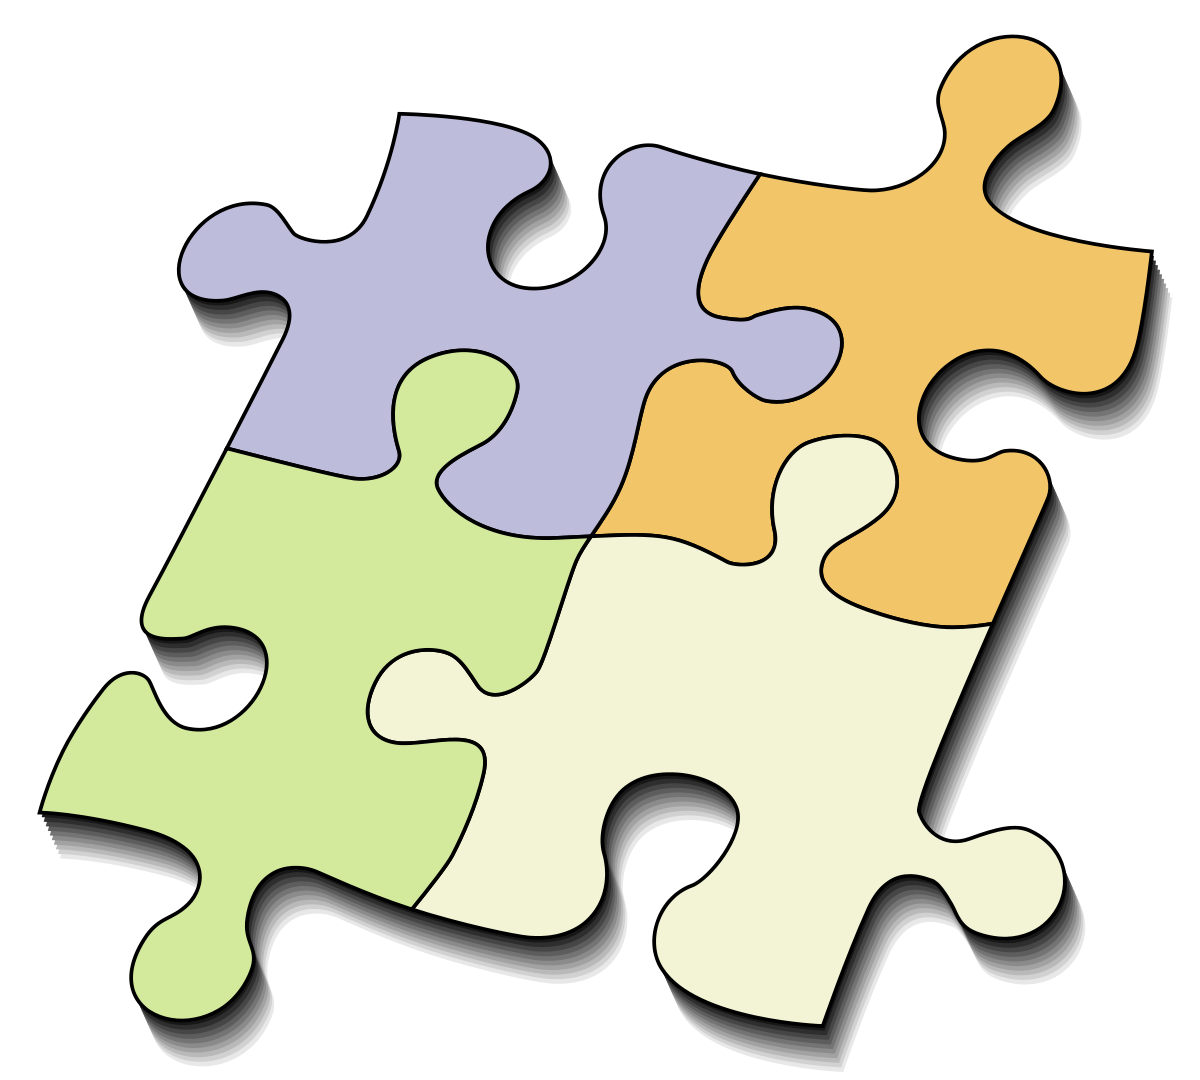 Puzzle clipart share toy. Desktop backgrounds jigsaw simple